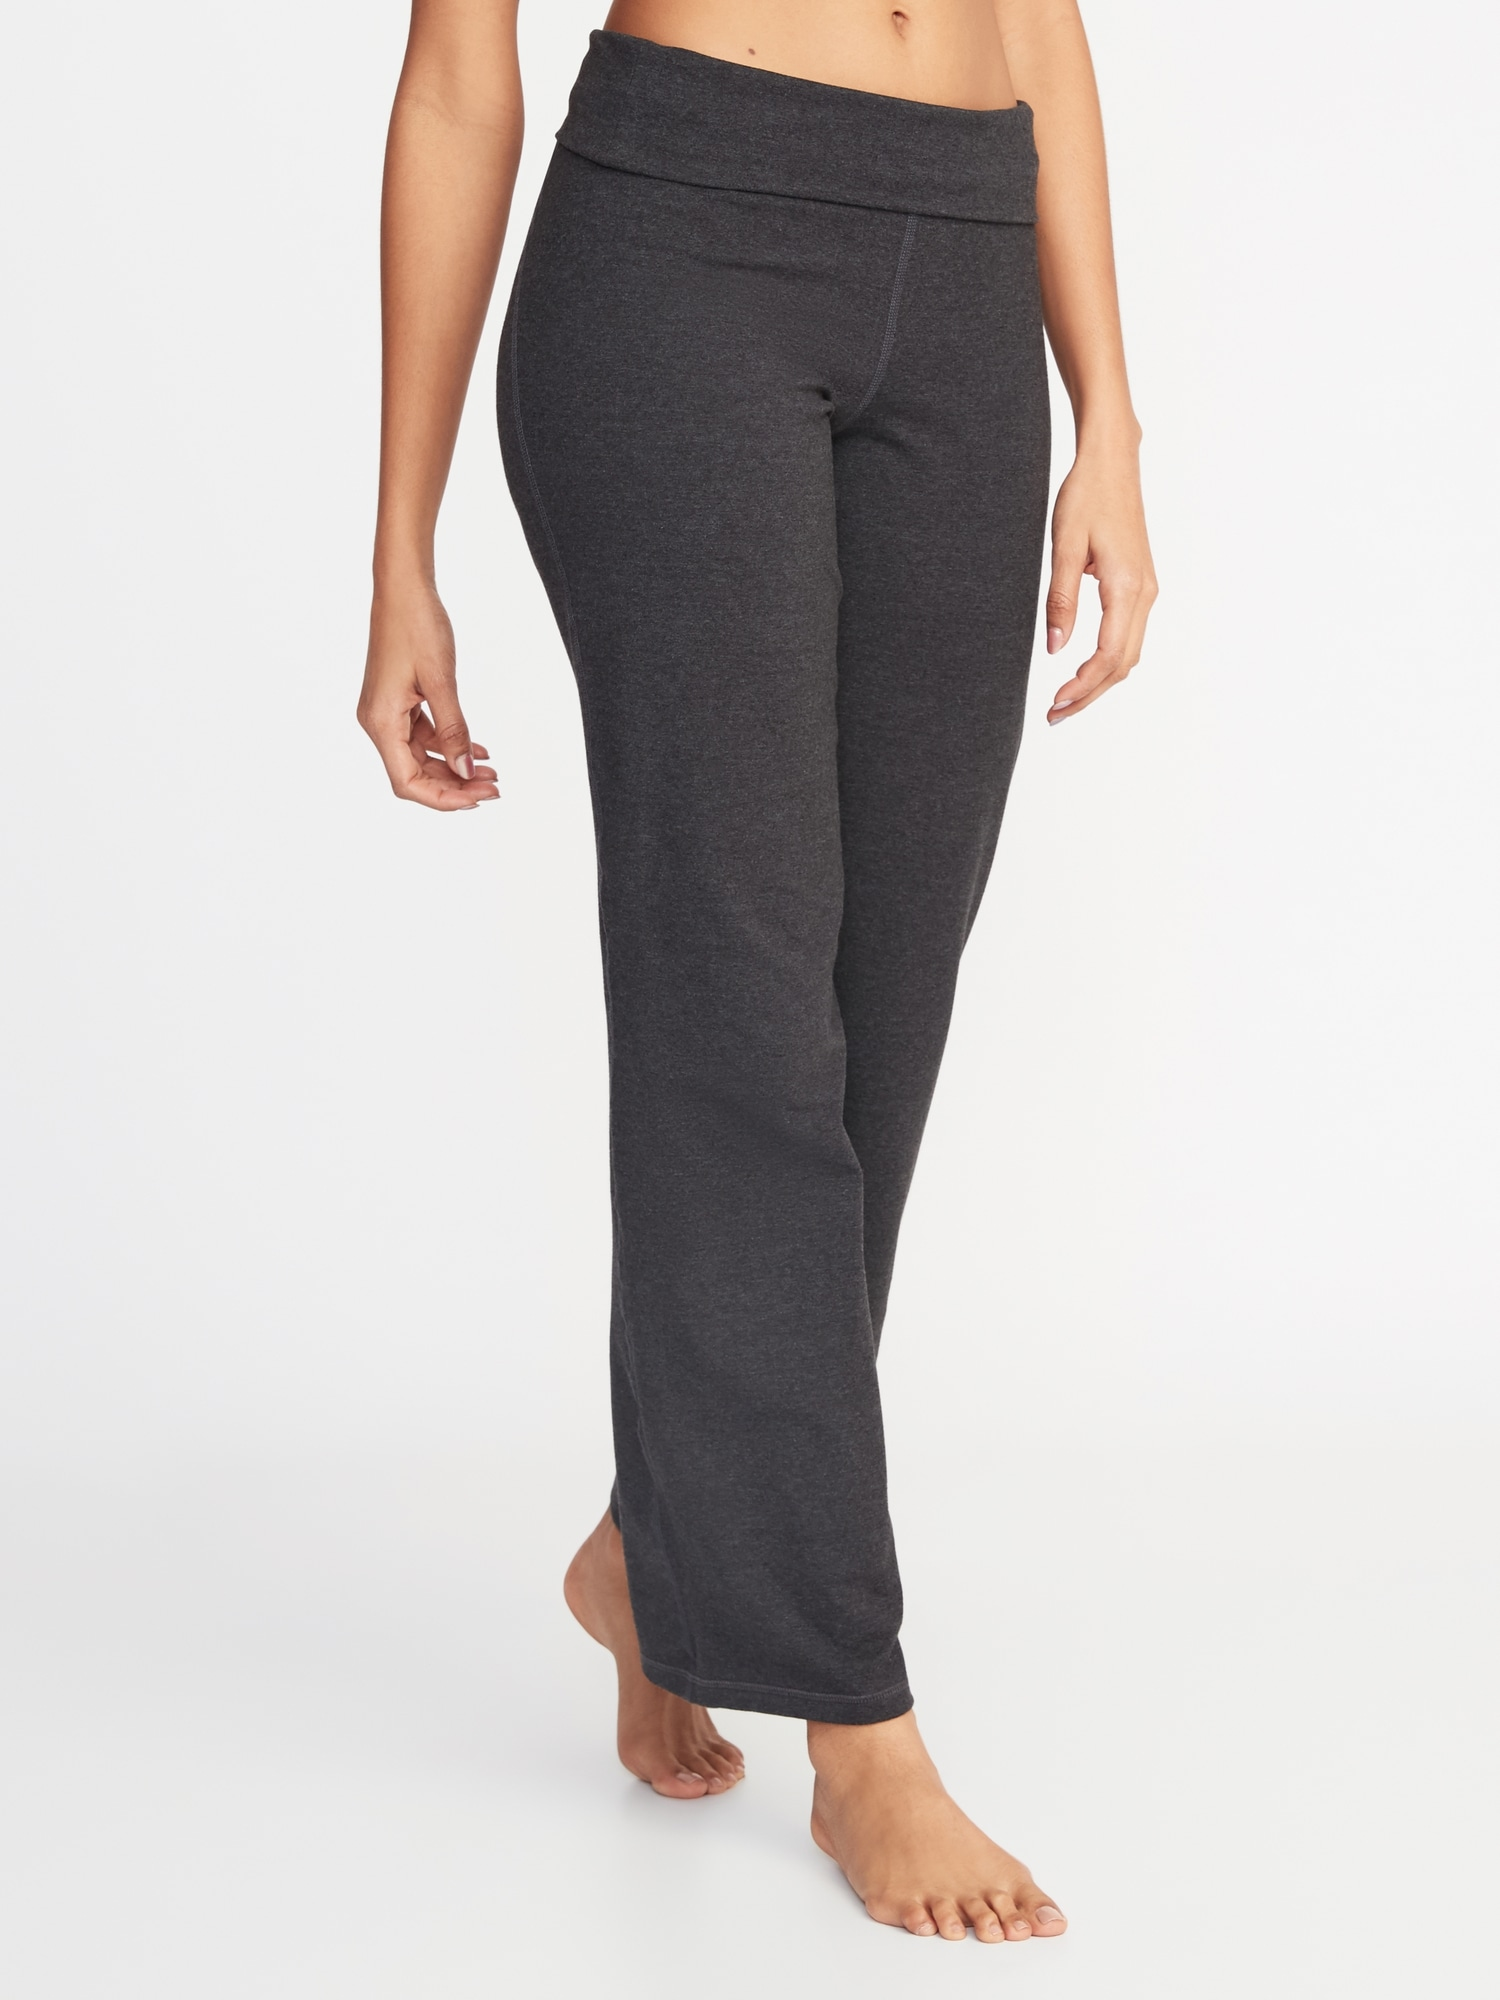 Mid Rise Wide Leg Yoga Pants For Women Old Navy